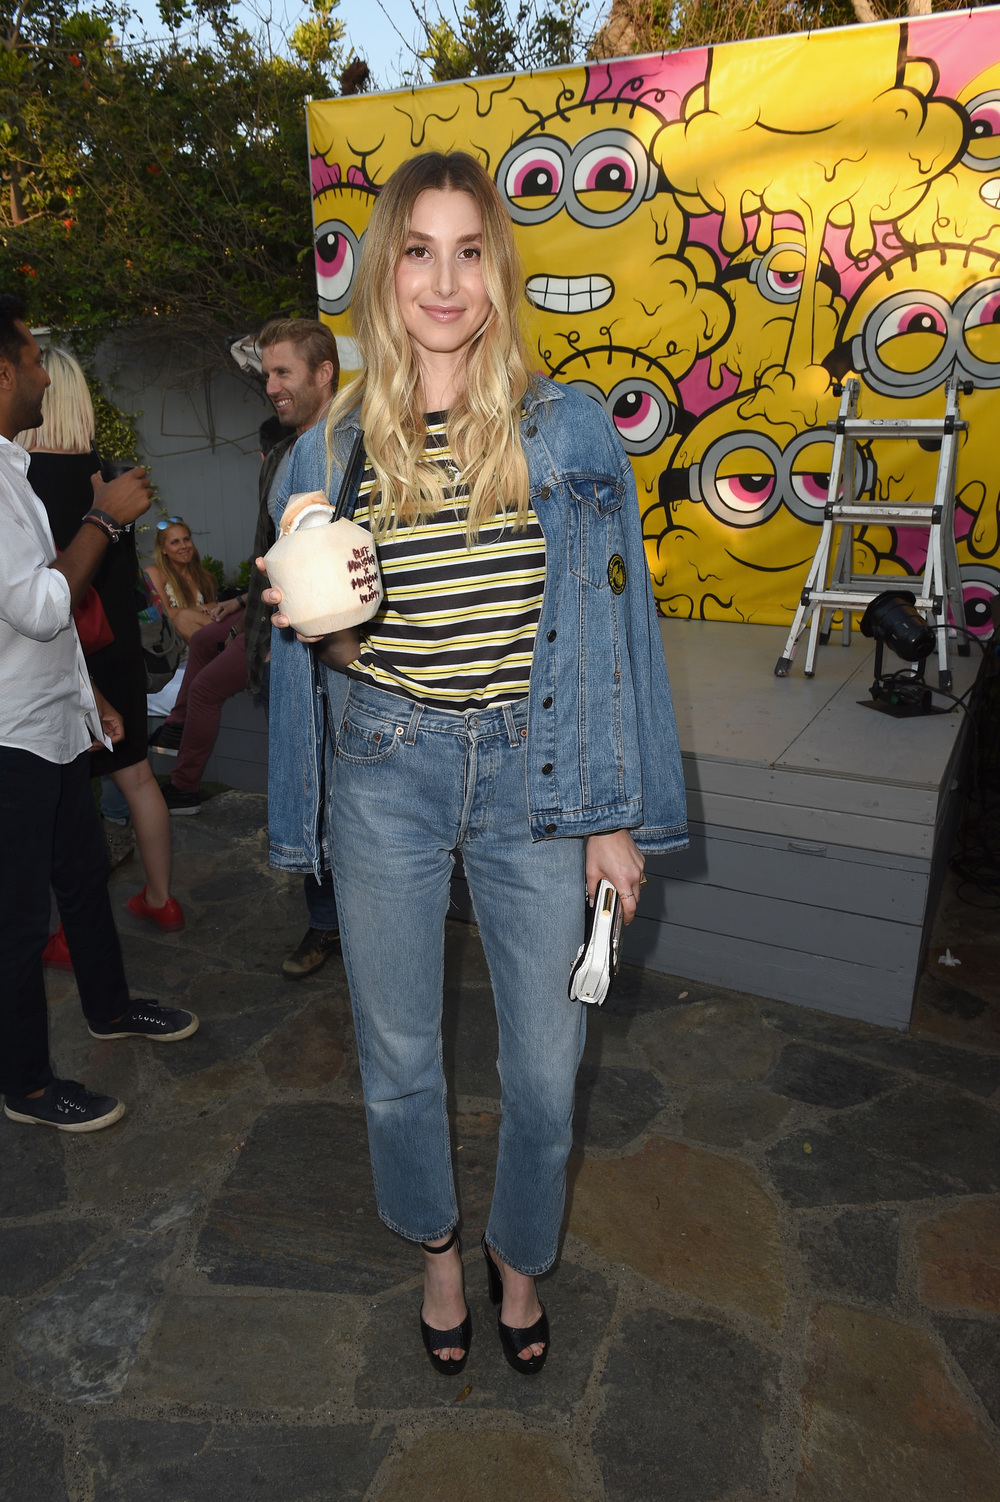 Whitney Port attends Buff Monster x Minions x Rusty Lost in Paradise Capsule Collection launch event on July 28, 2016 in Santa Monica, California.  (Photo by Joshua Blanchard/WireImage)